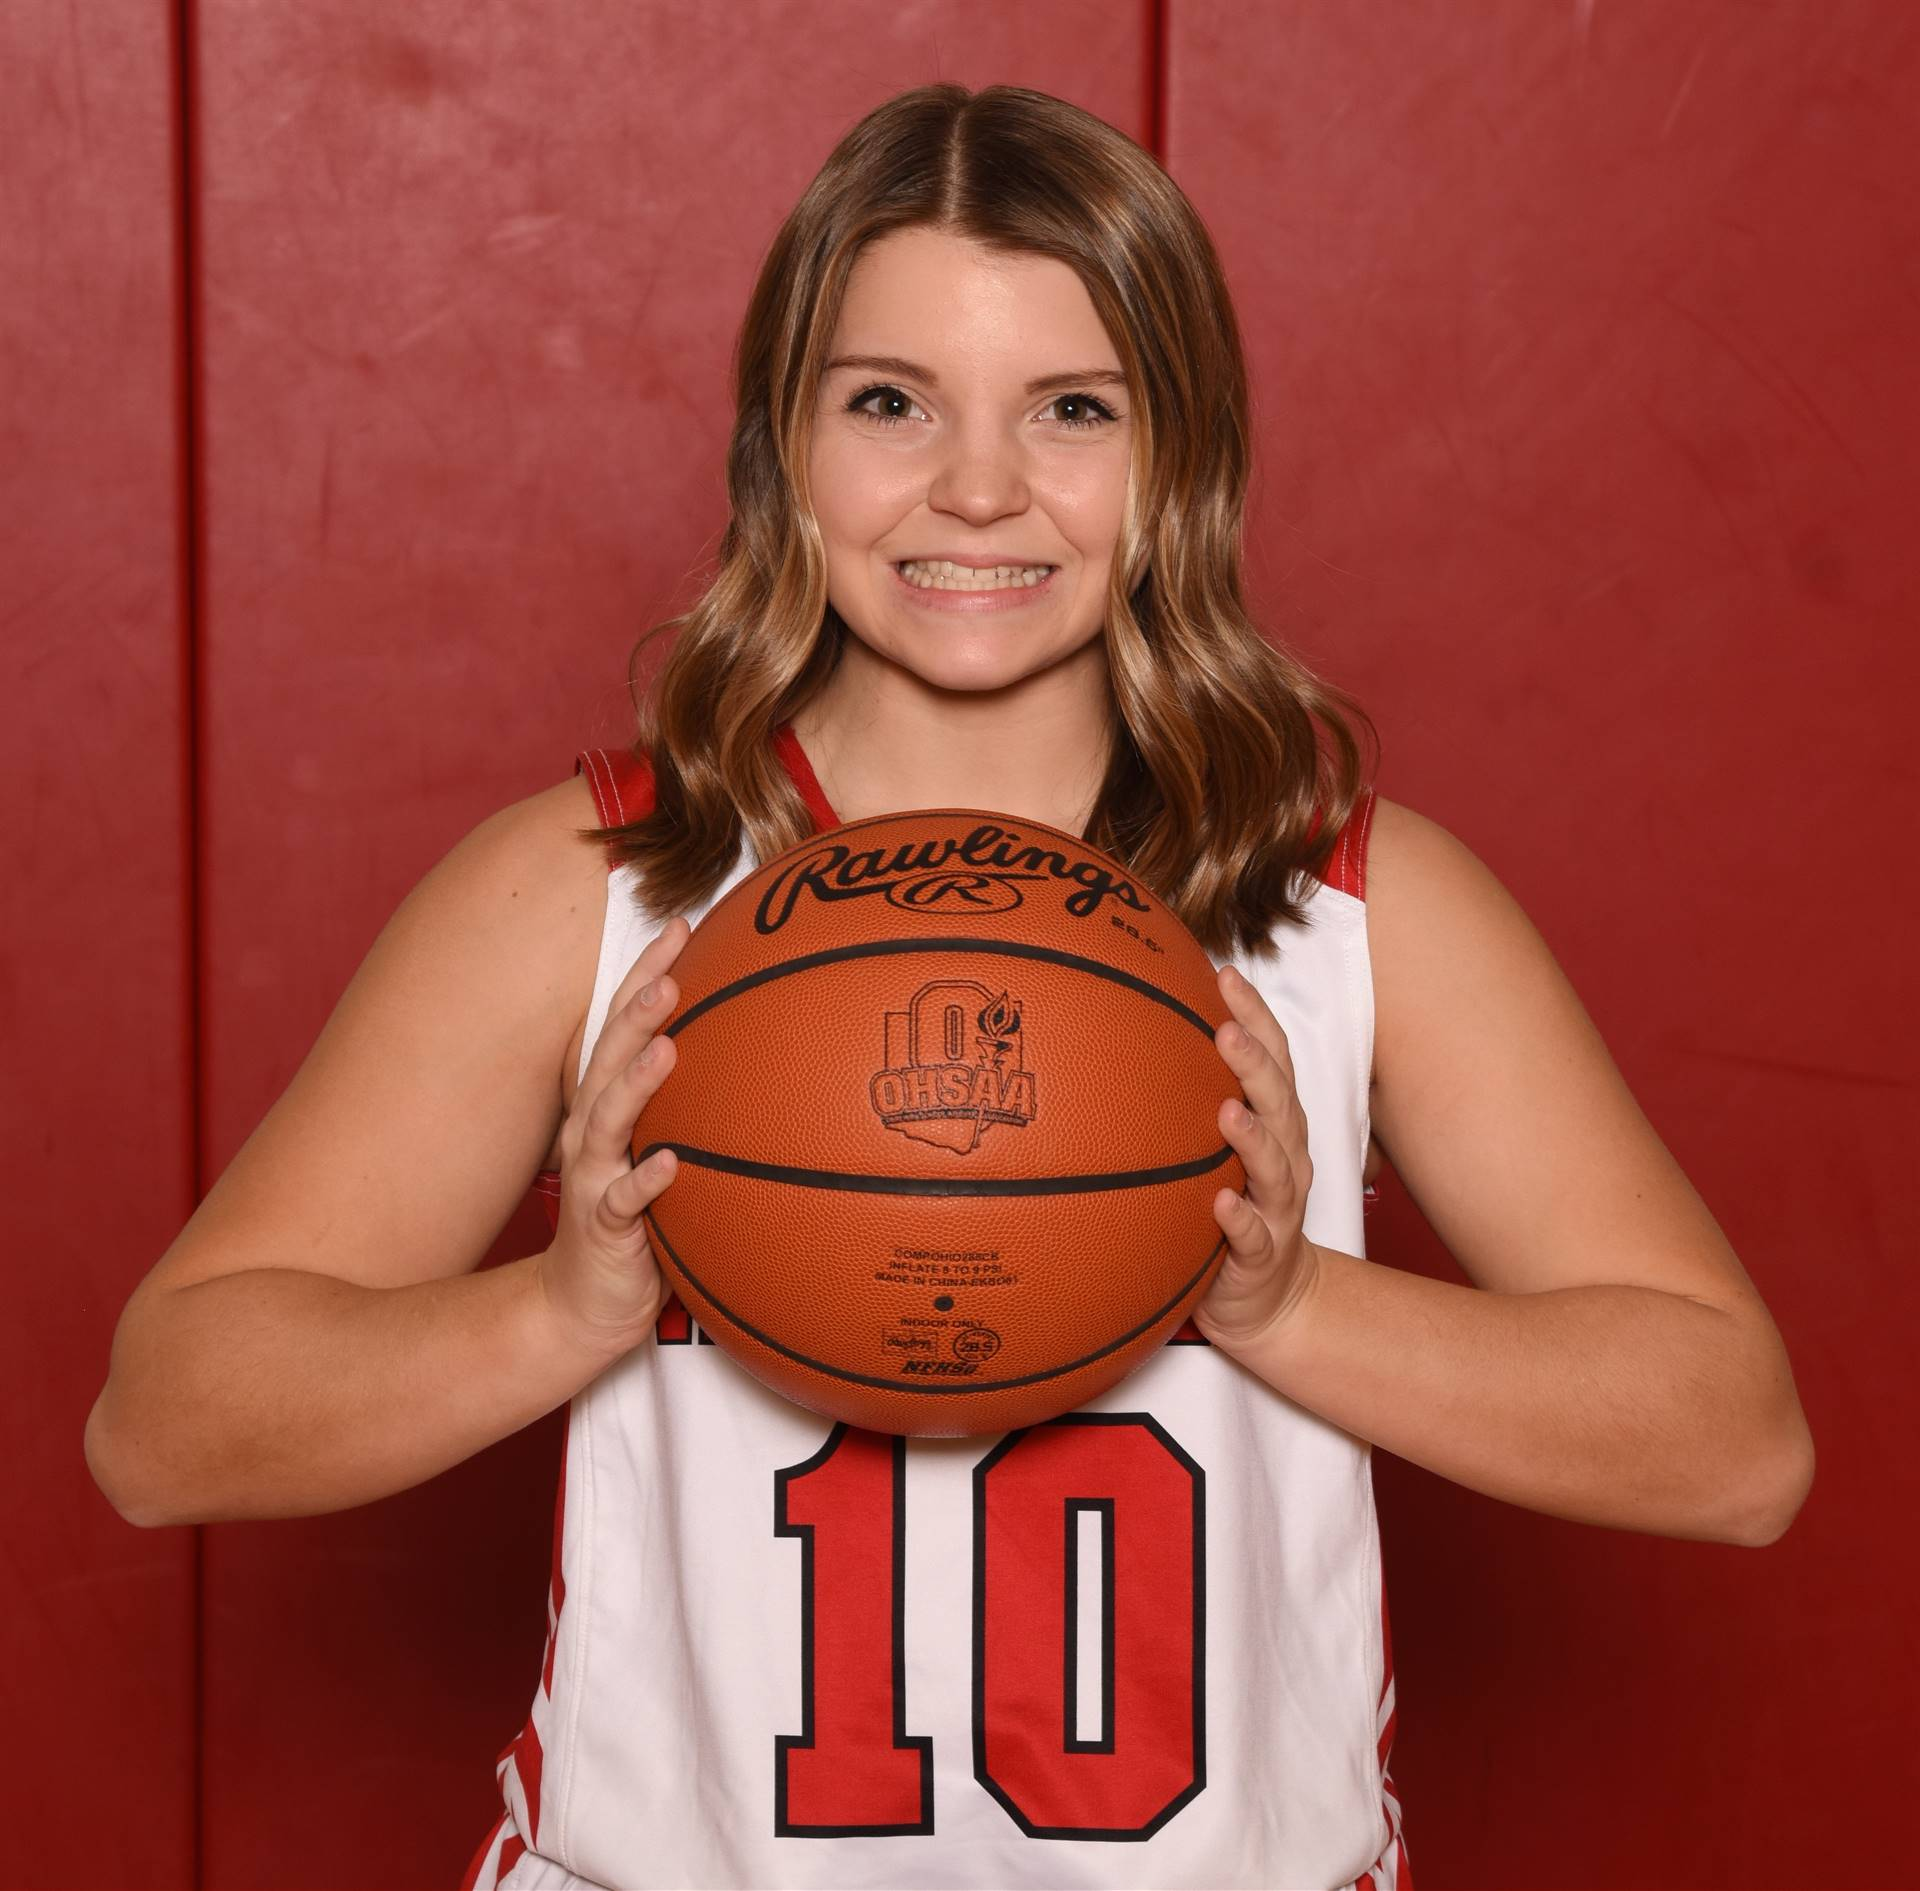 Senior Head Shot Photo - Kayla Brubaker - Basketball